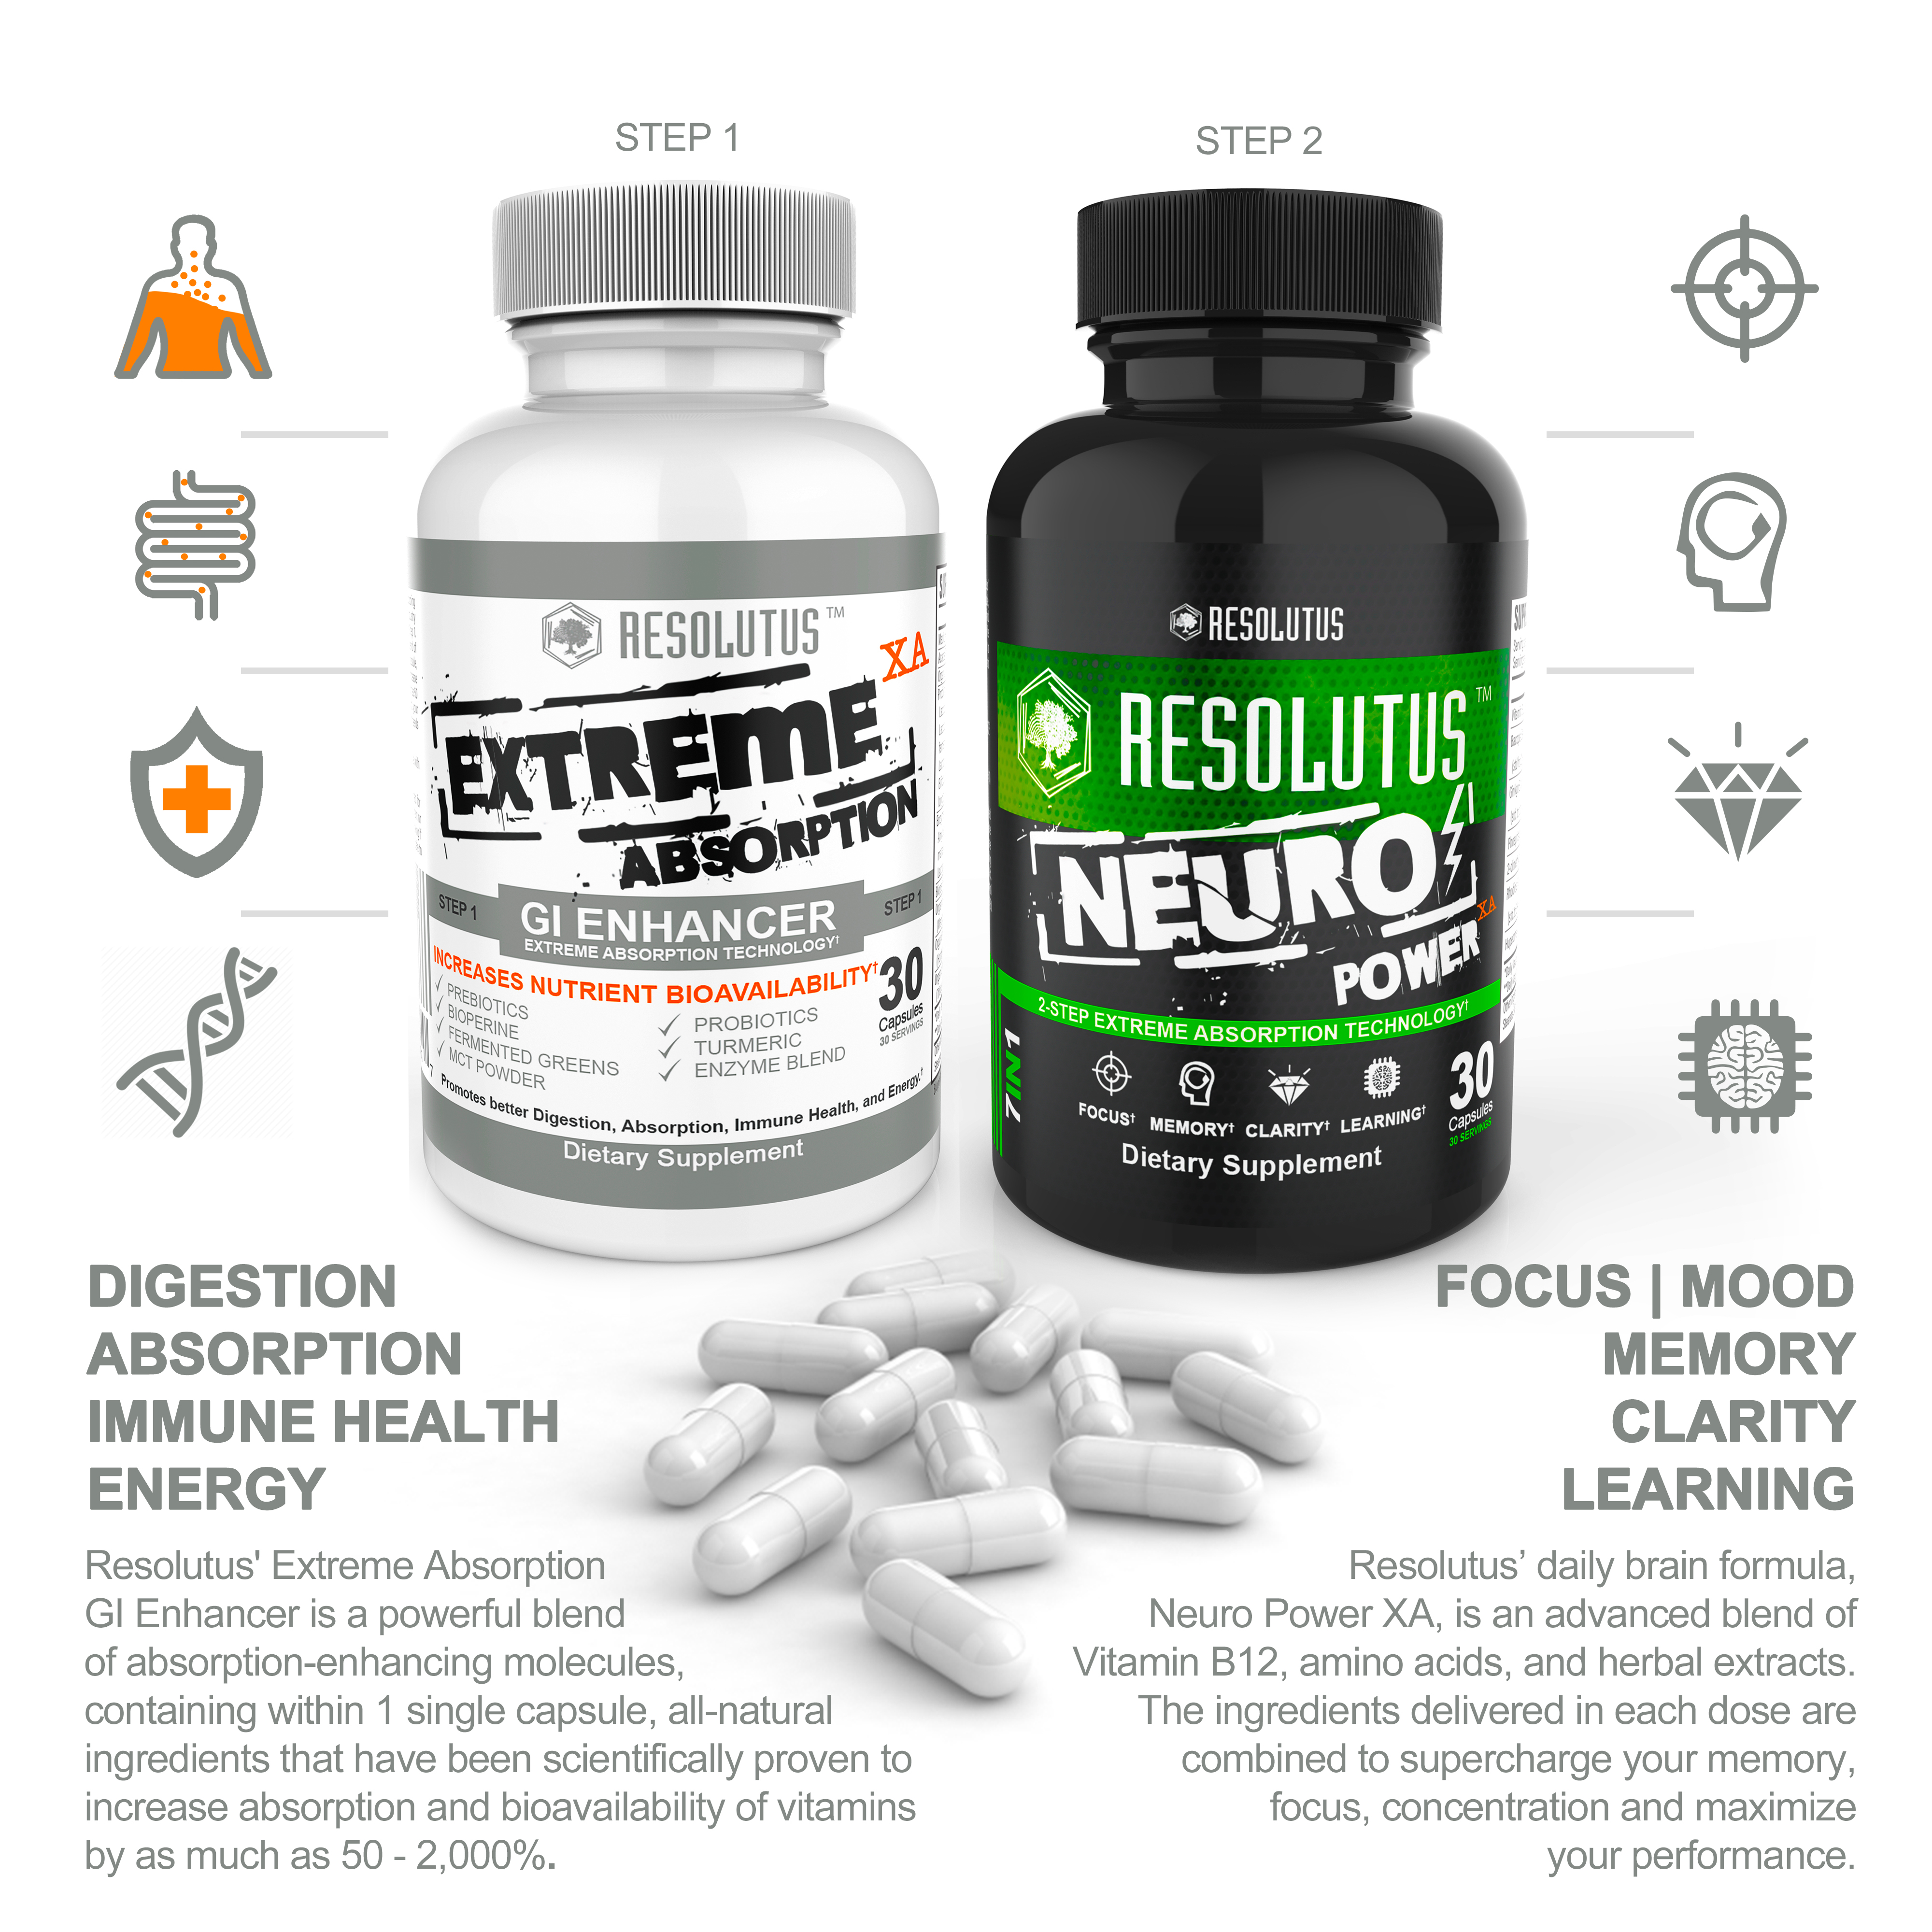 Resolutus Technologies Inc is utilizing Mr. Checkout's Fast Track Program to reach Independent Nutrition Stores Nationwide.